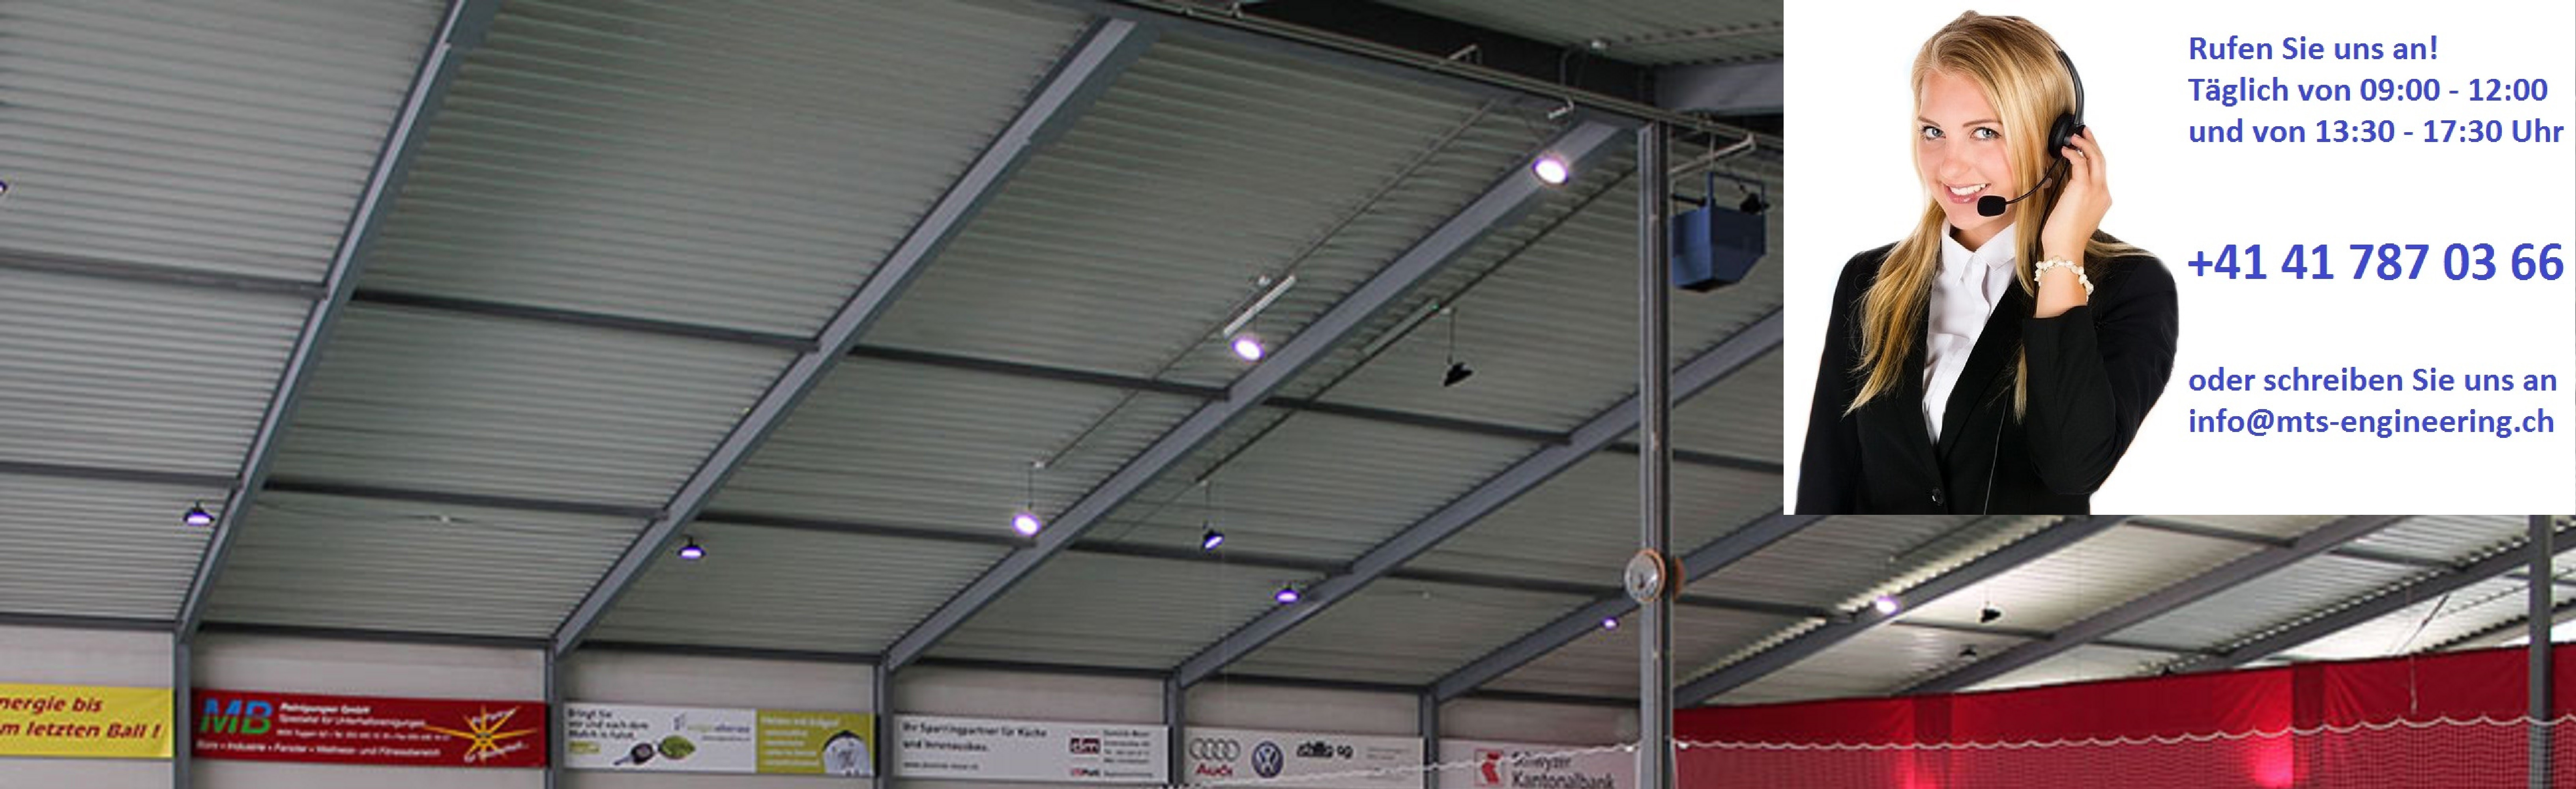 LED Sporthallenbeleuchtung